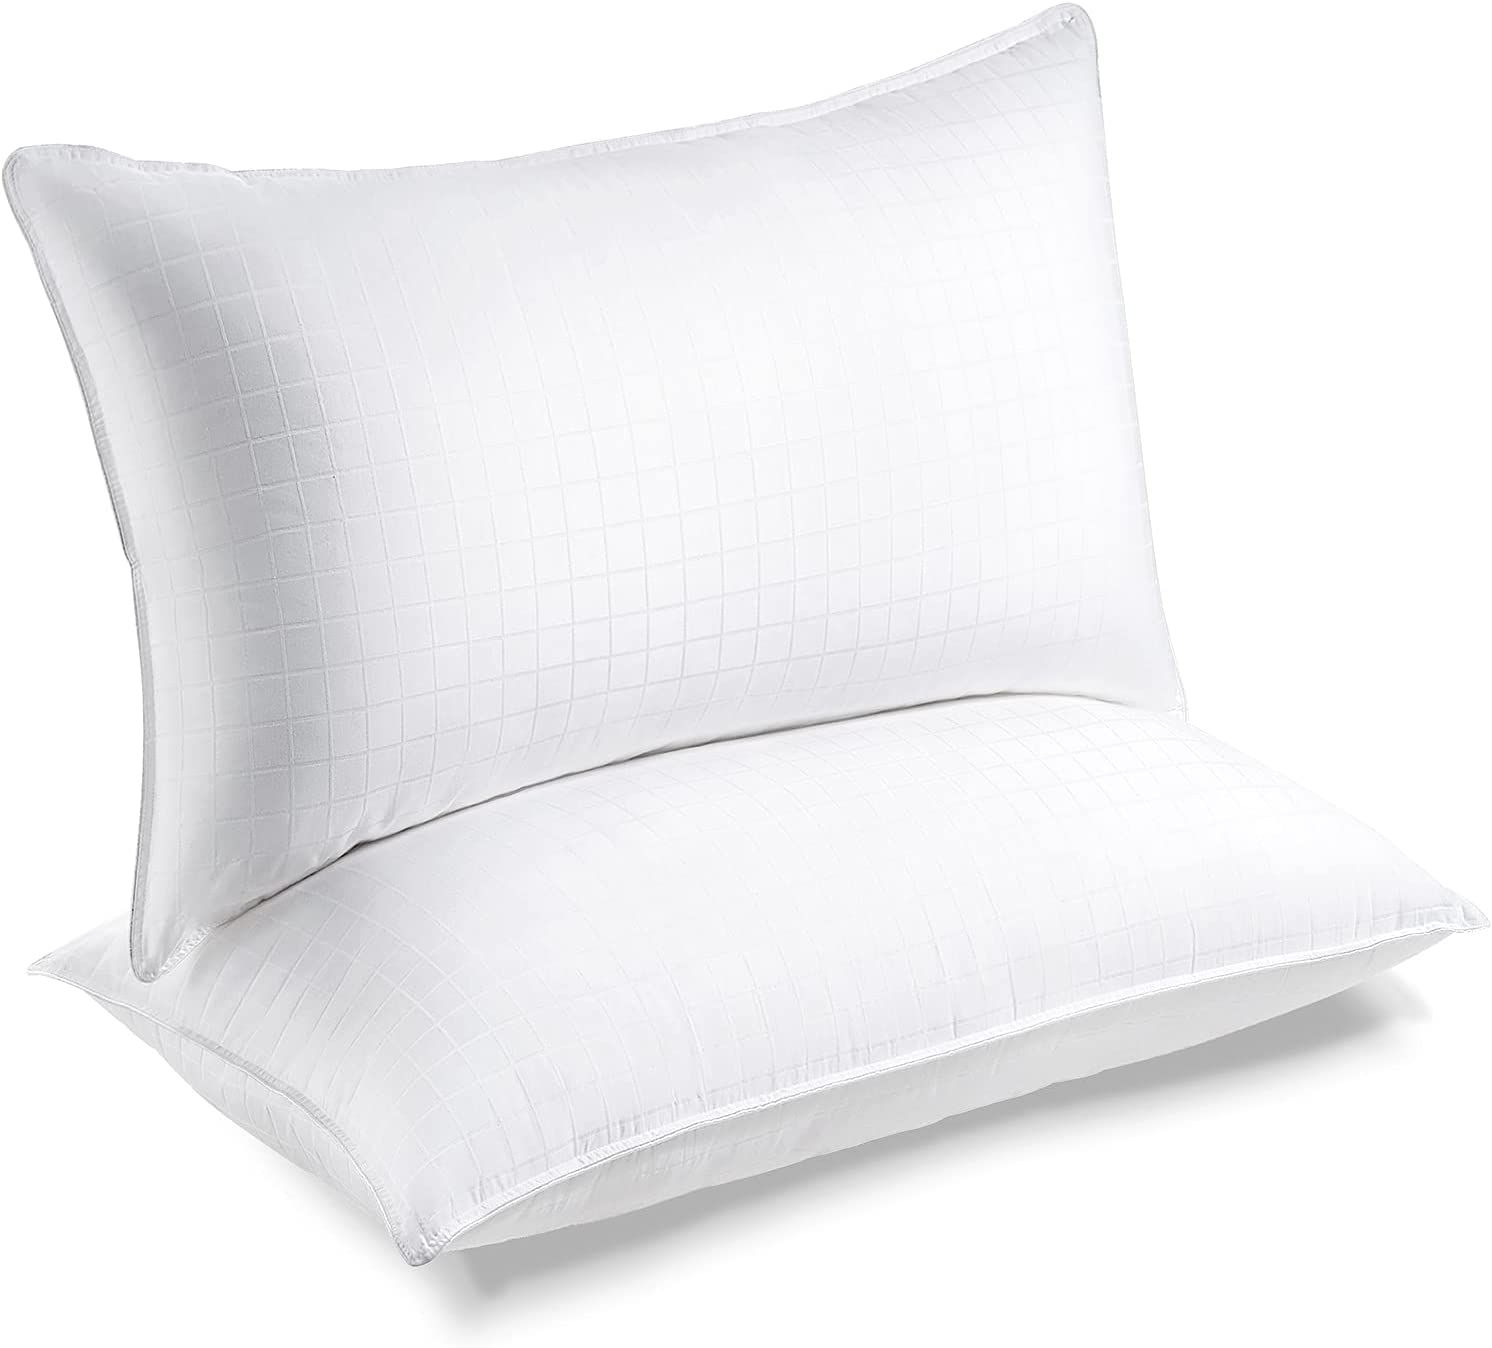 Lifewit Bed Pillows for Sleeping, Soft Support Sink-in Pillows, Queen Size Set of 2, Supportive Cooling Pillows for Side Stomach Back Sleepers